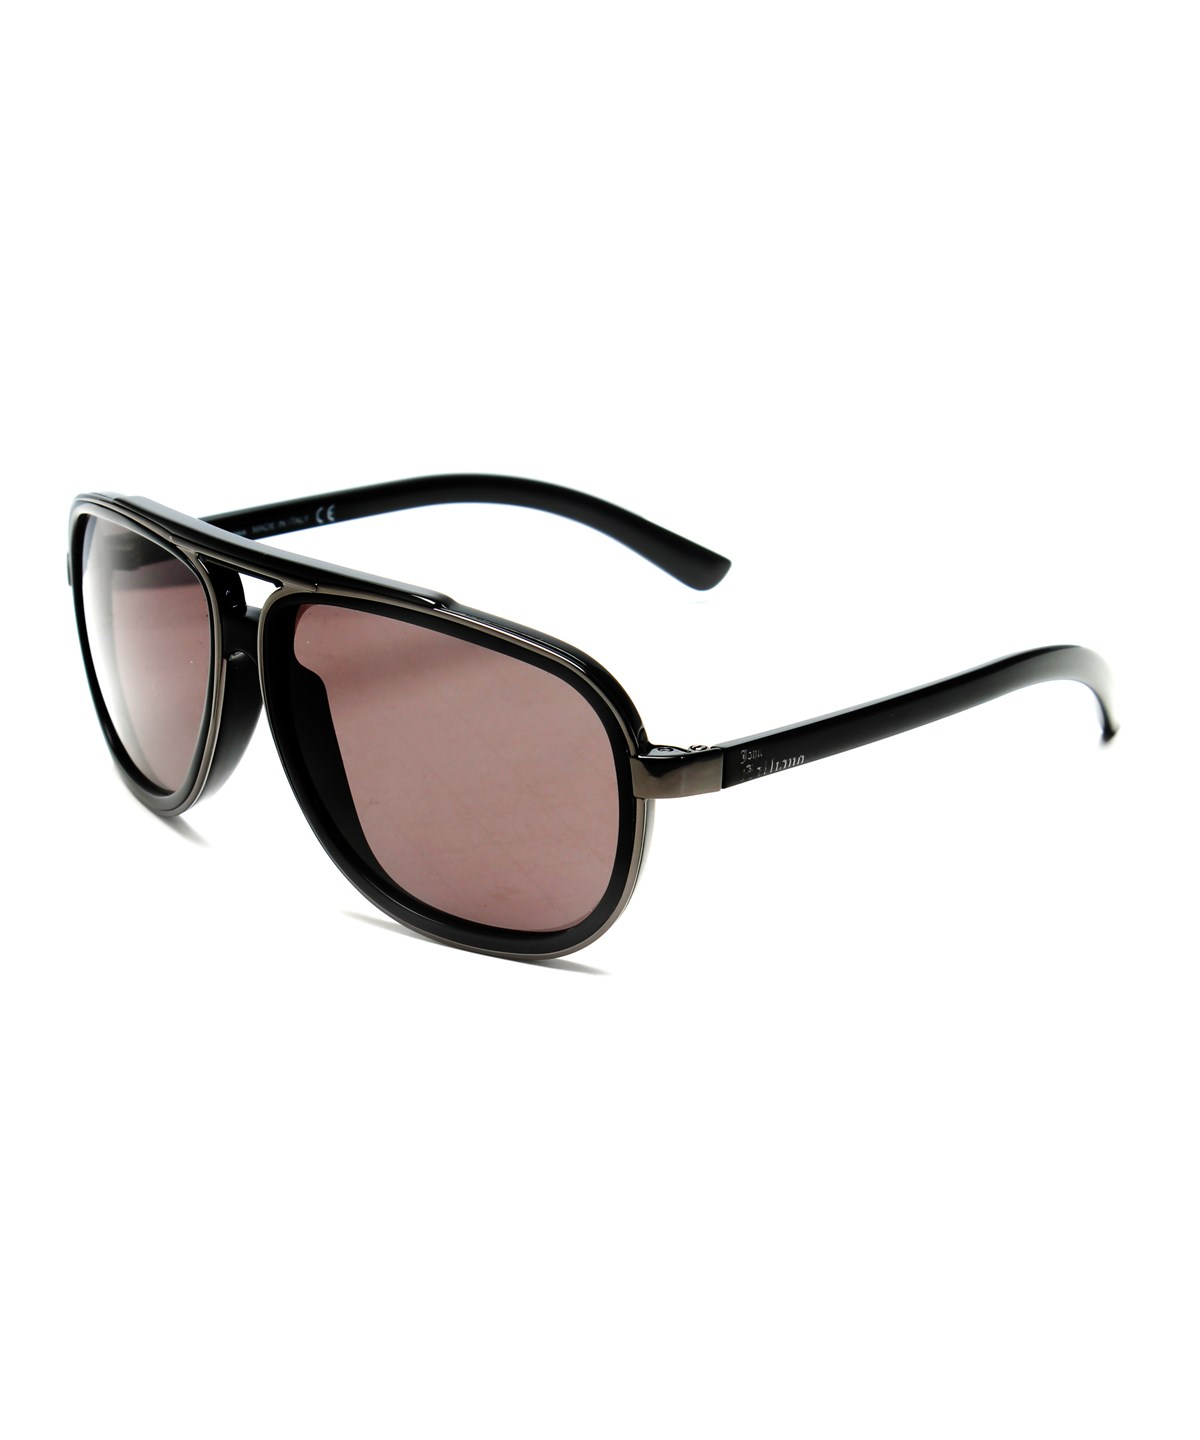 John Galliano Women's Large Frame Pilot Style Sunglasses Grey/Black In Multiple Colors